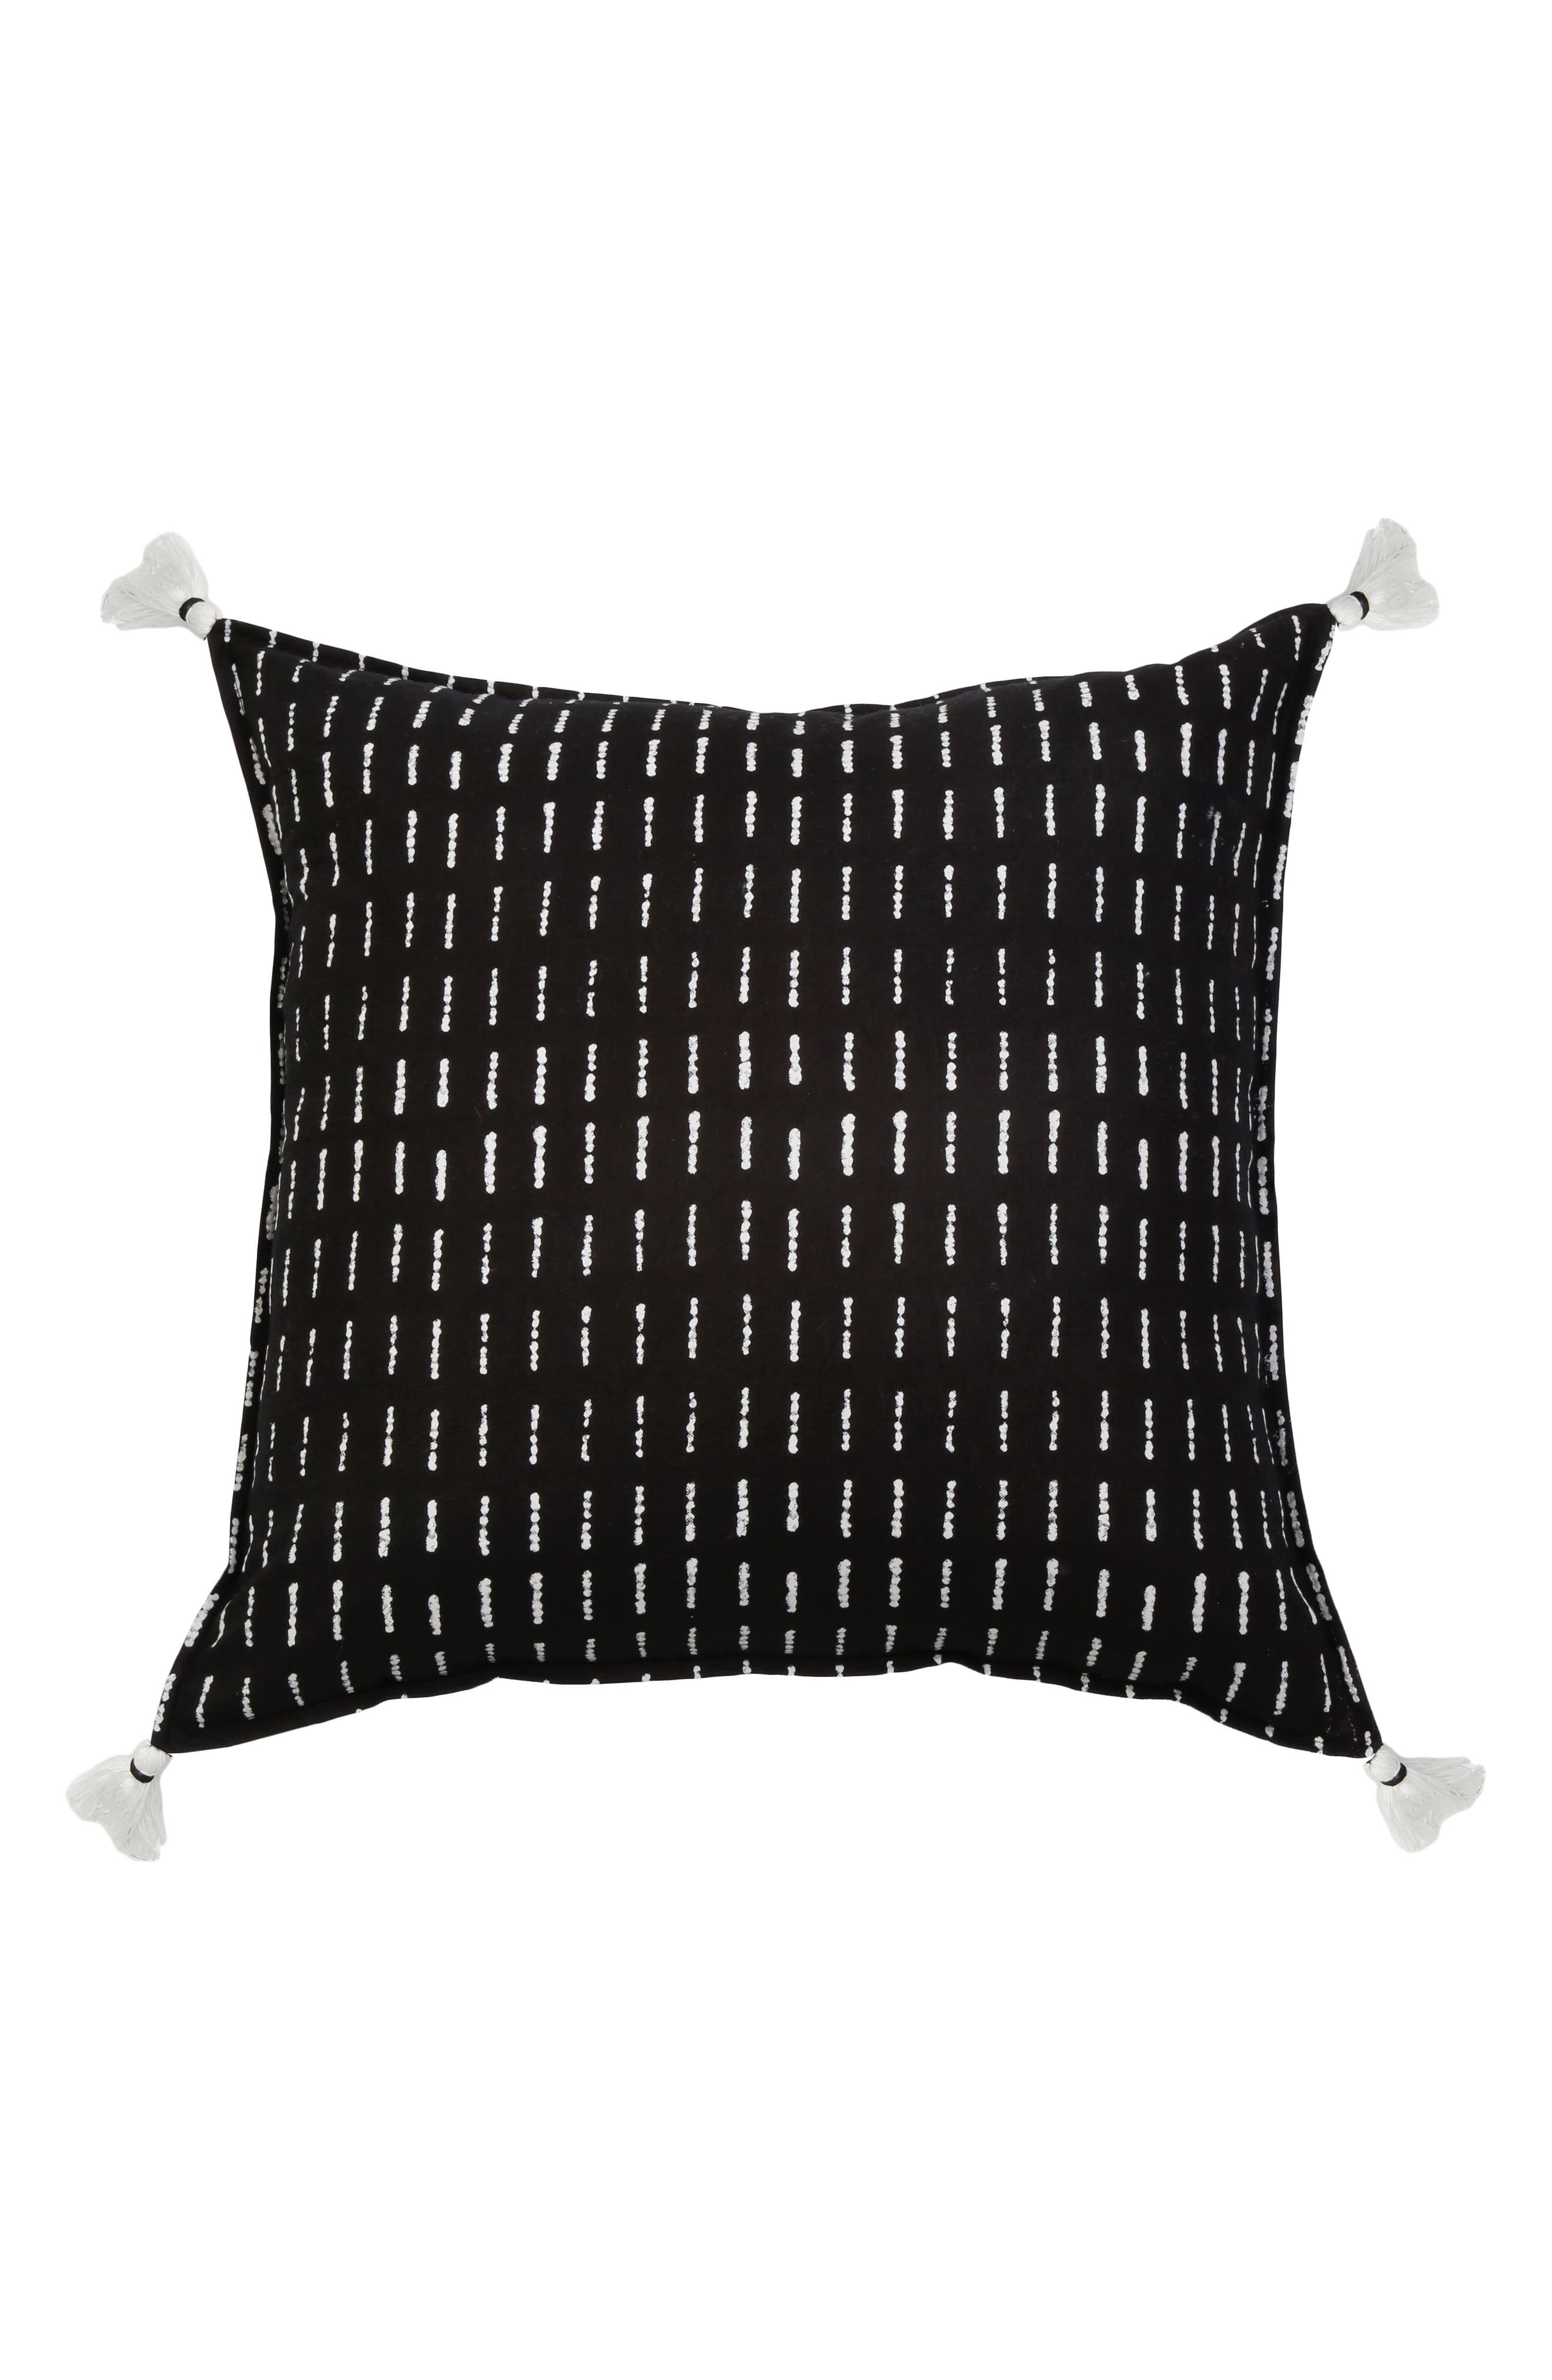 Alternate Image 1 Selected - Pom Pom at Home Dash Accent Pillow